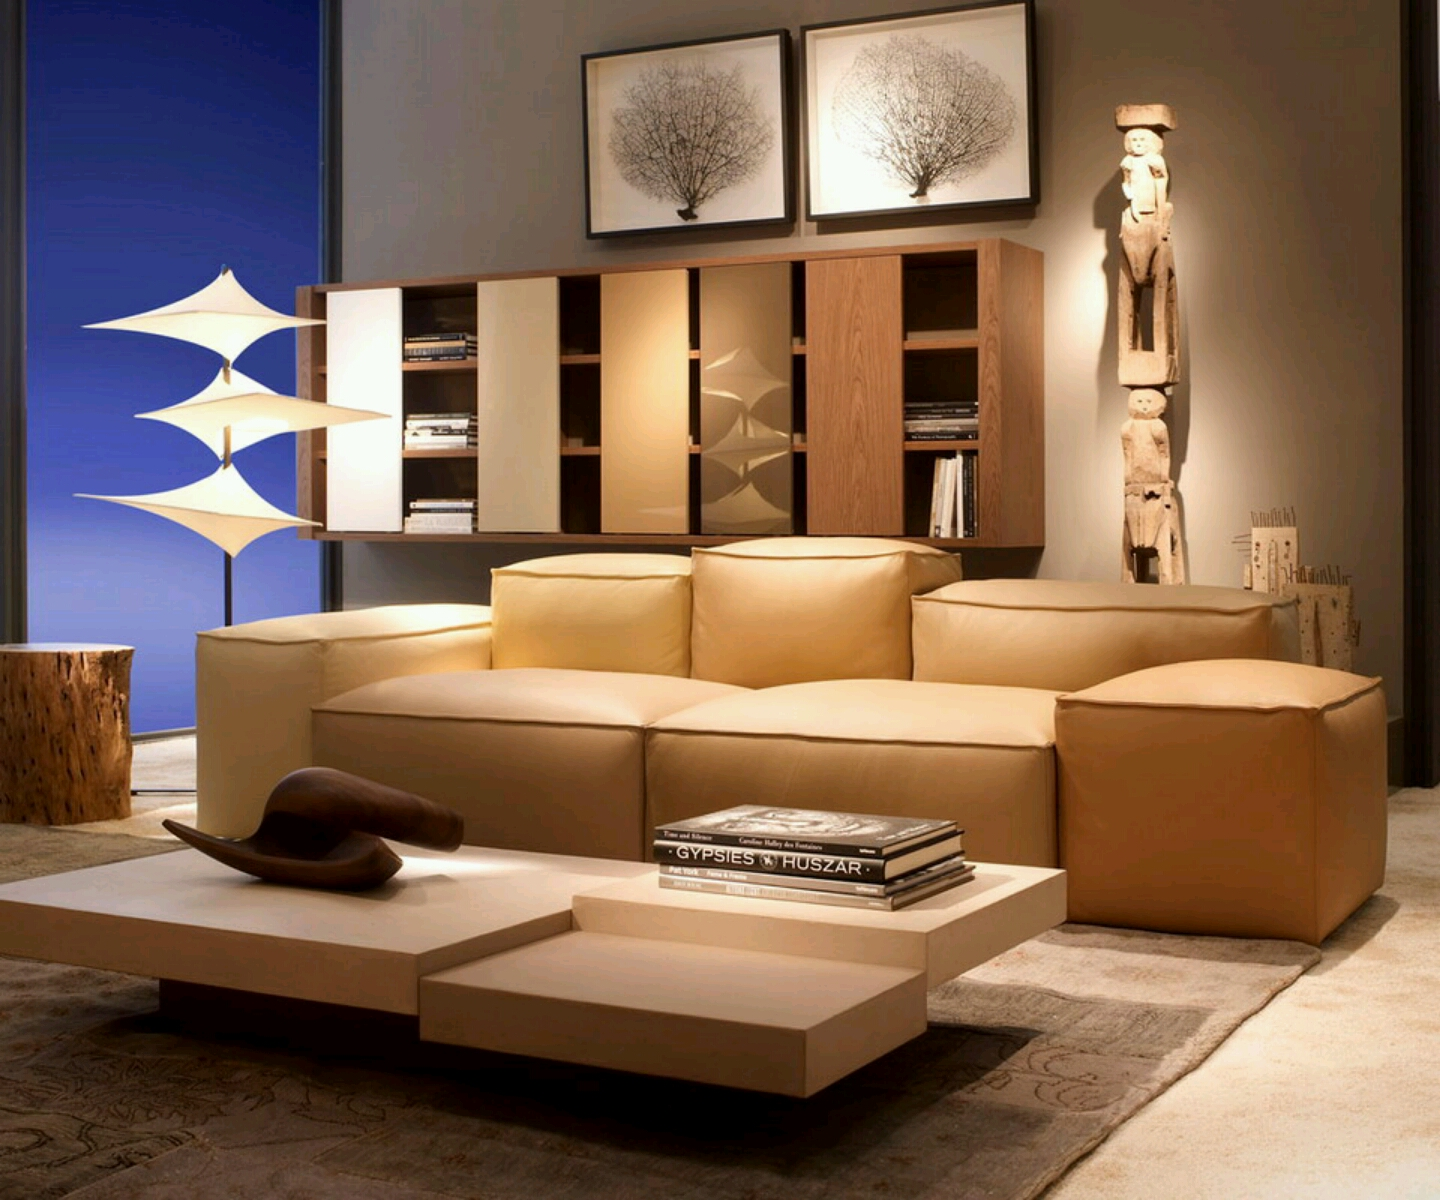 Beautiful modern sofa furniture designs an interior design New home furniture ideas